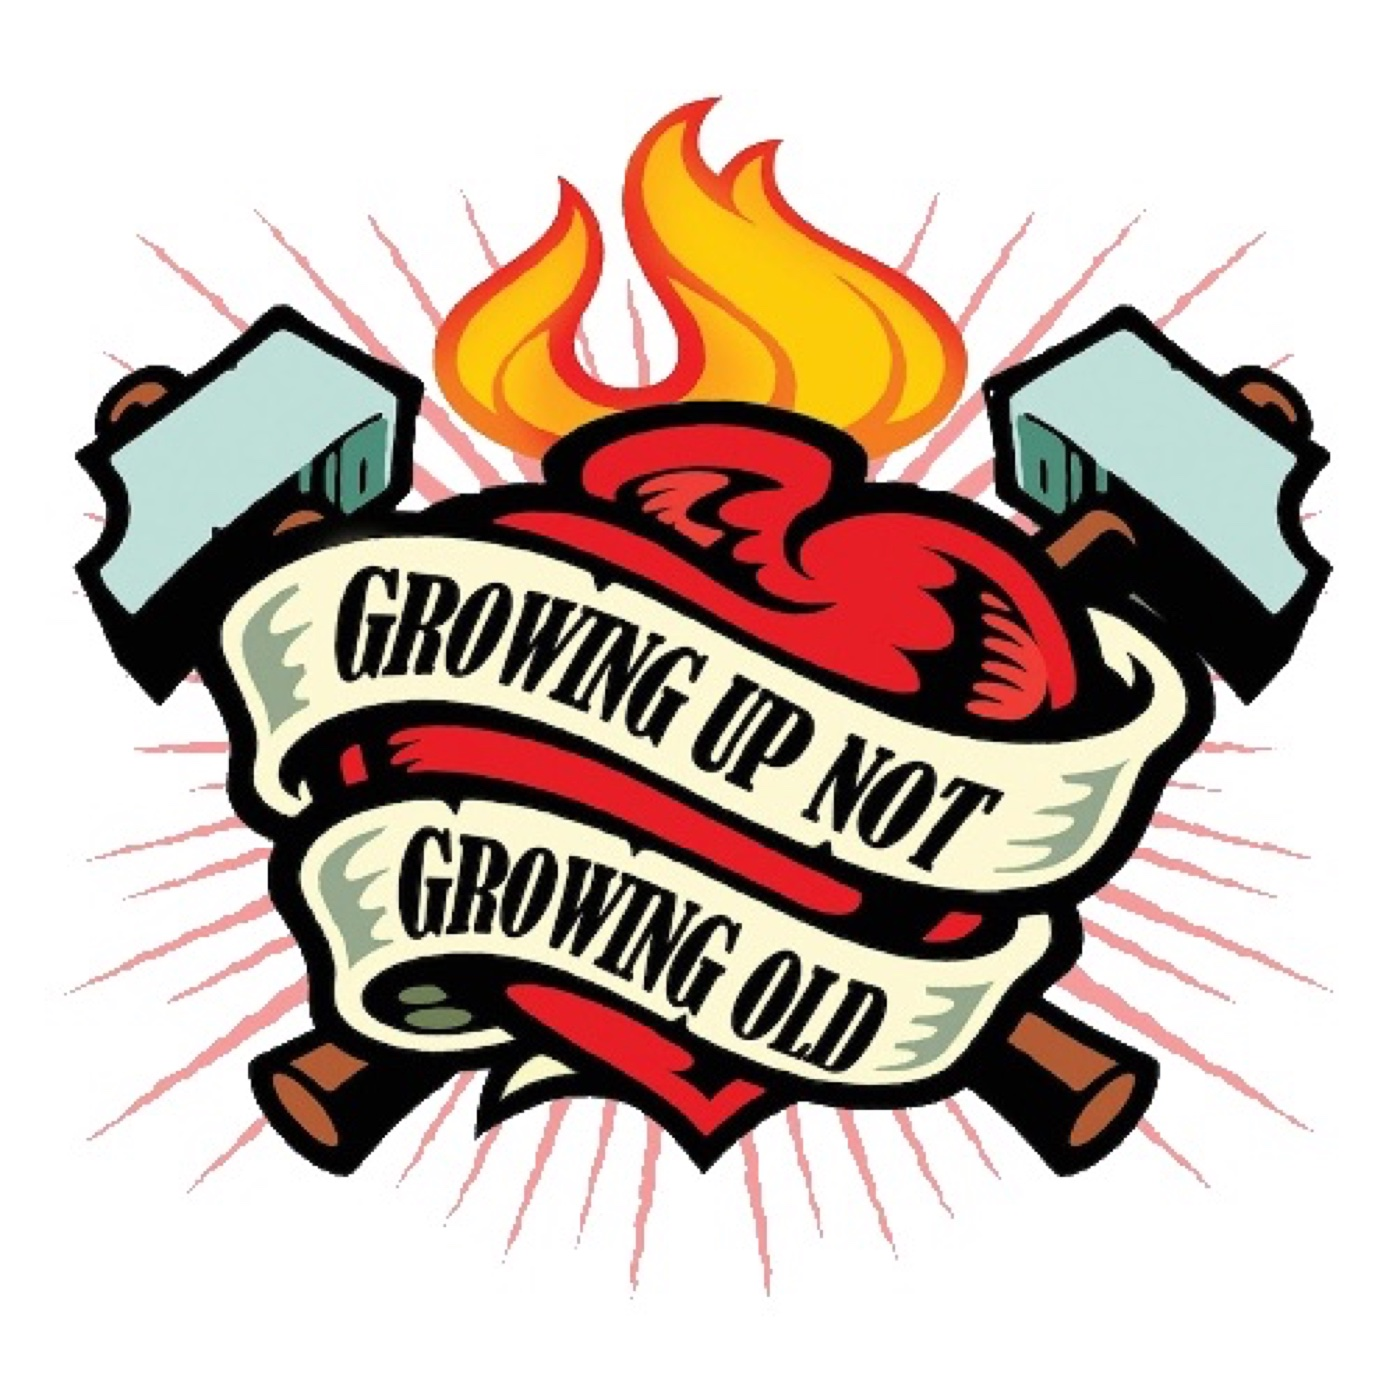 Growing Up Not Growing Old